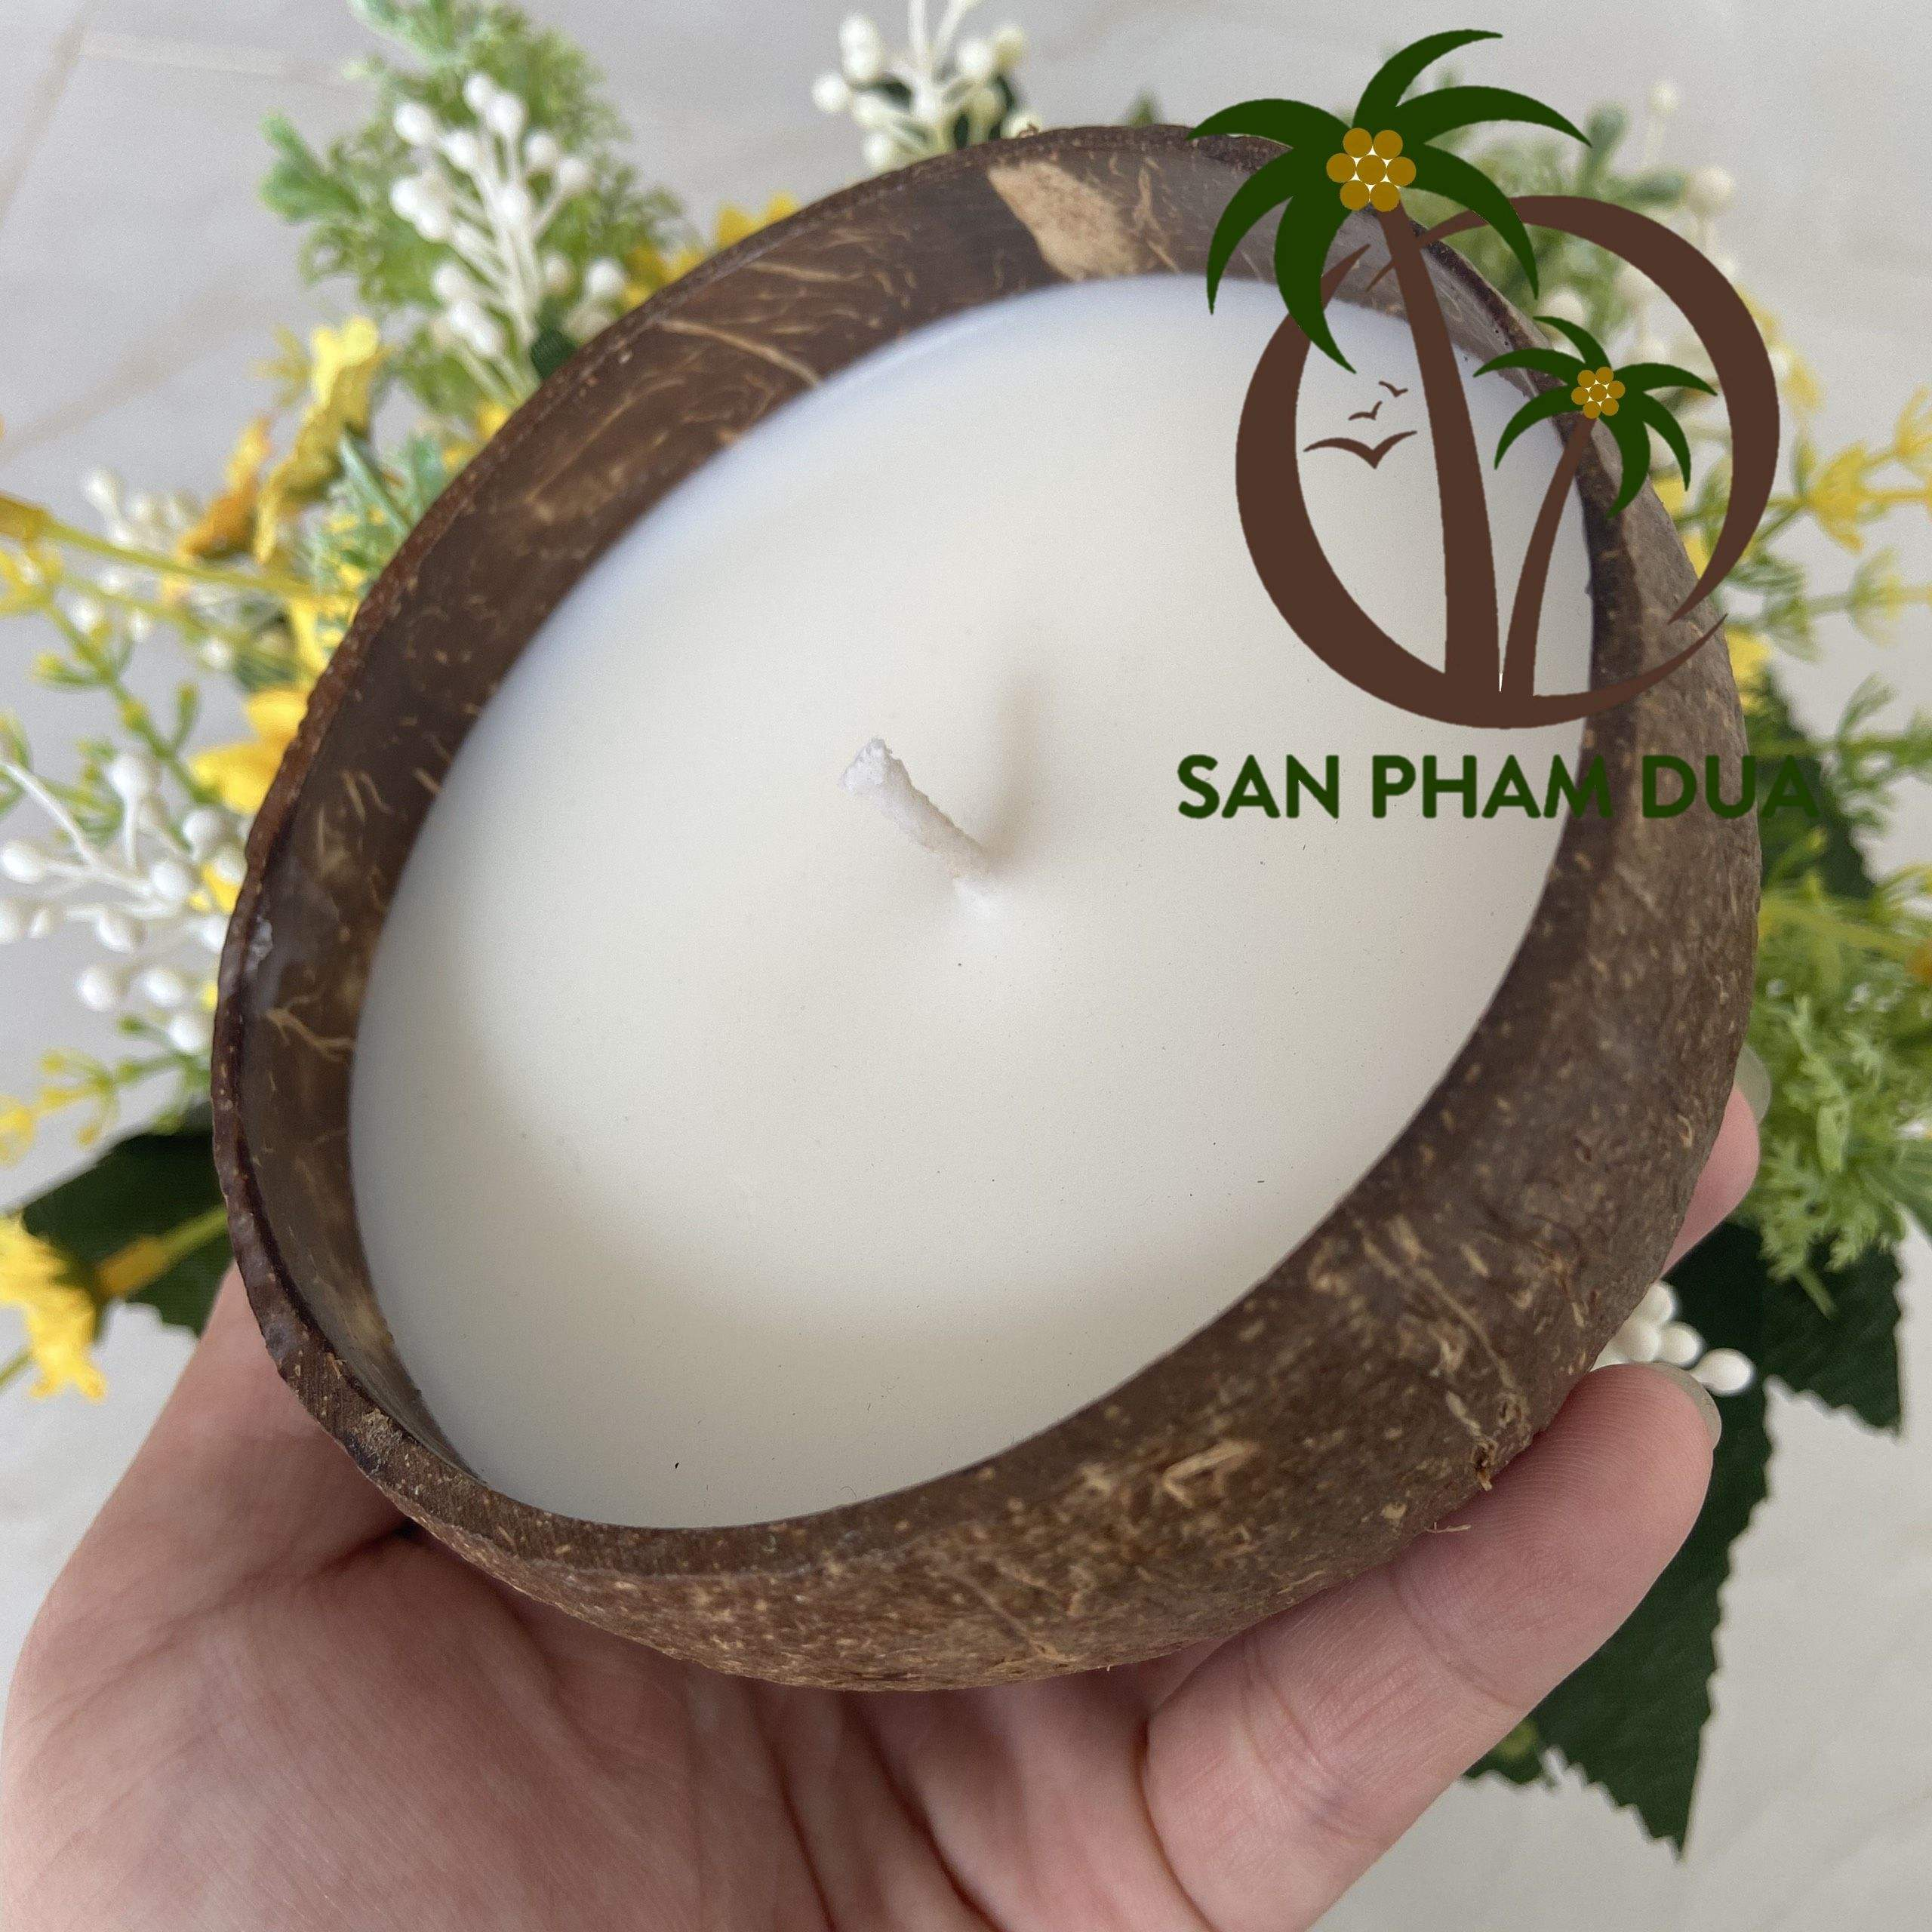 HANDMADE CANDLES COCONUT WAX NATURAL COCO BOWL PARAFFIN WAX FOR CANDLE SOY WAX CANDLE VARIOUS SCENT FOR CHRISTMAS GIFT